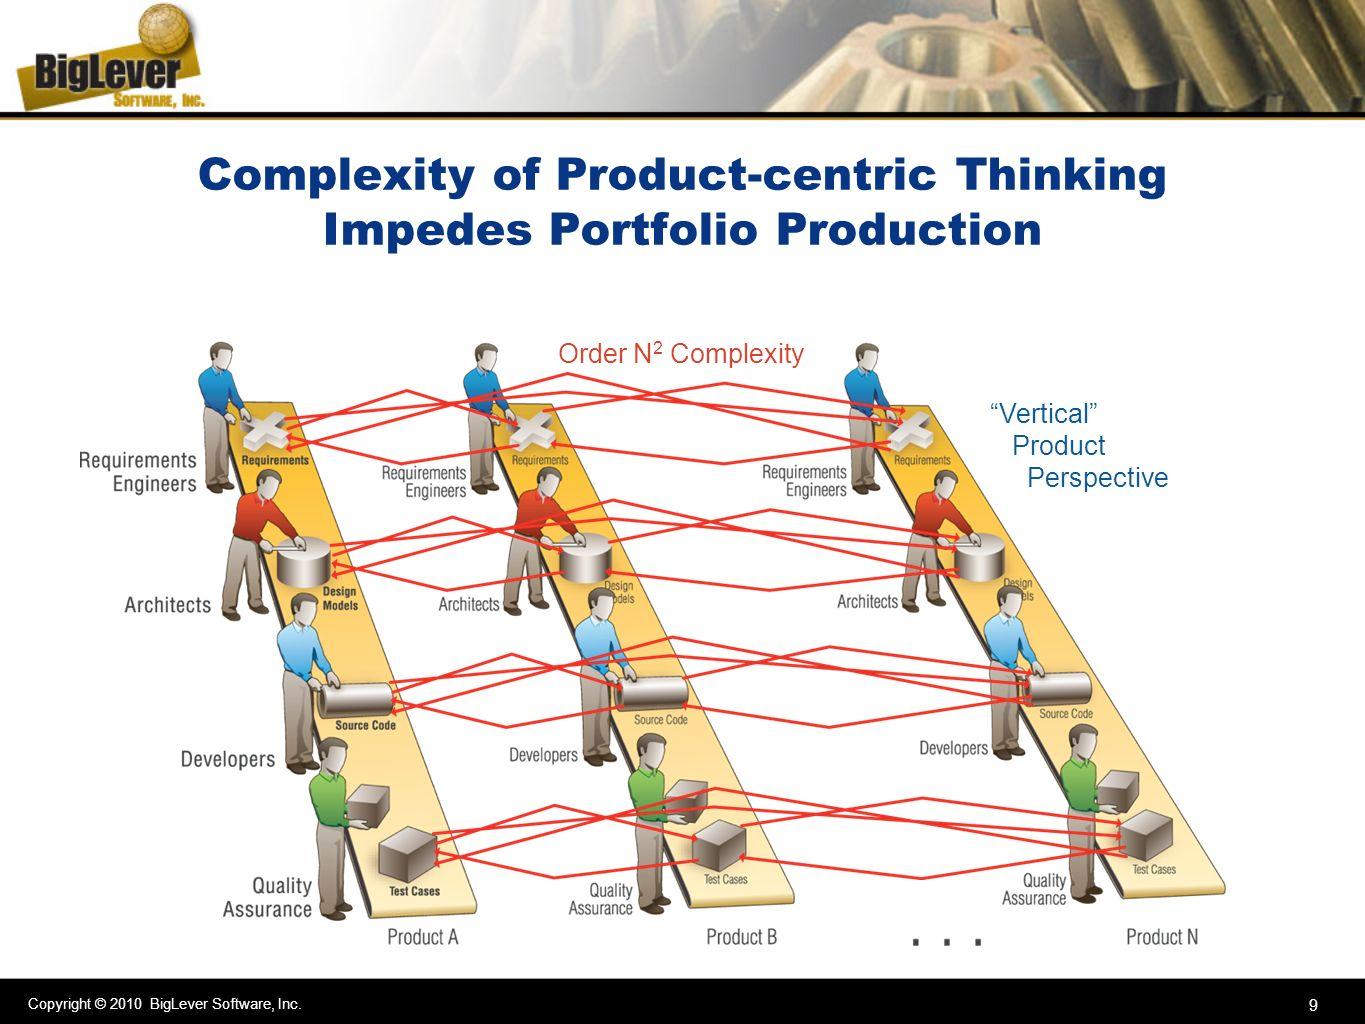 Complexity of Product-centric Thinking Impedes Portfolio Production